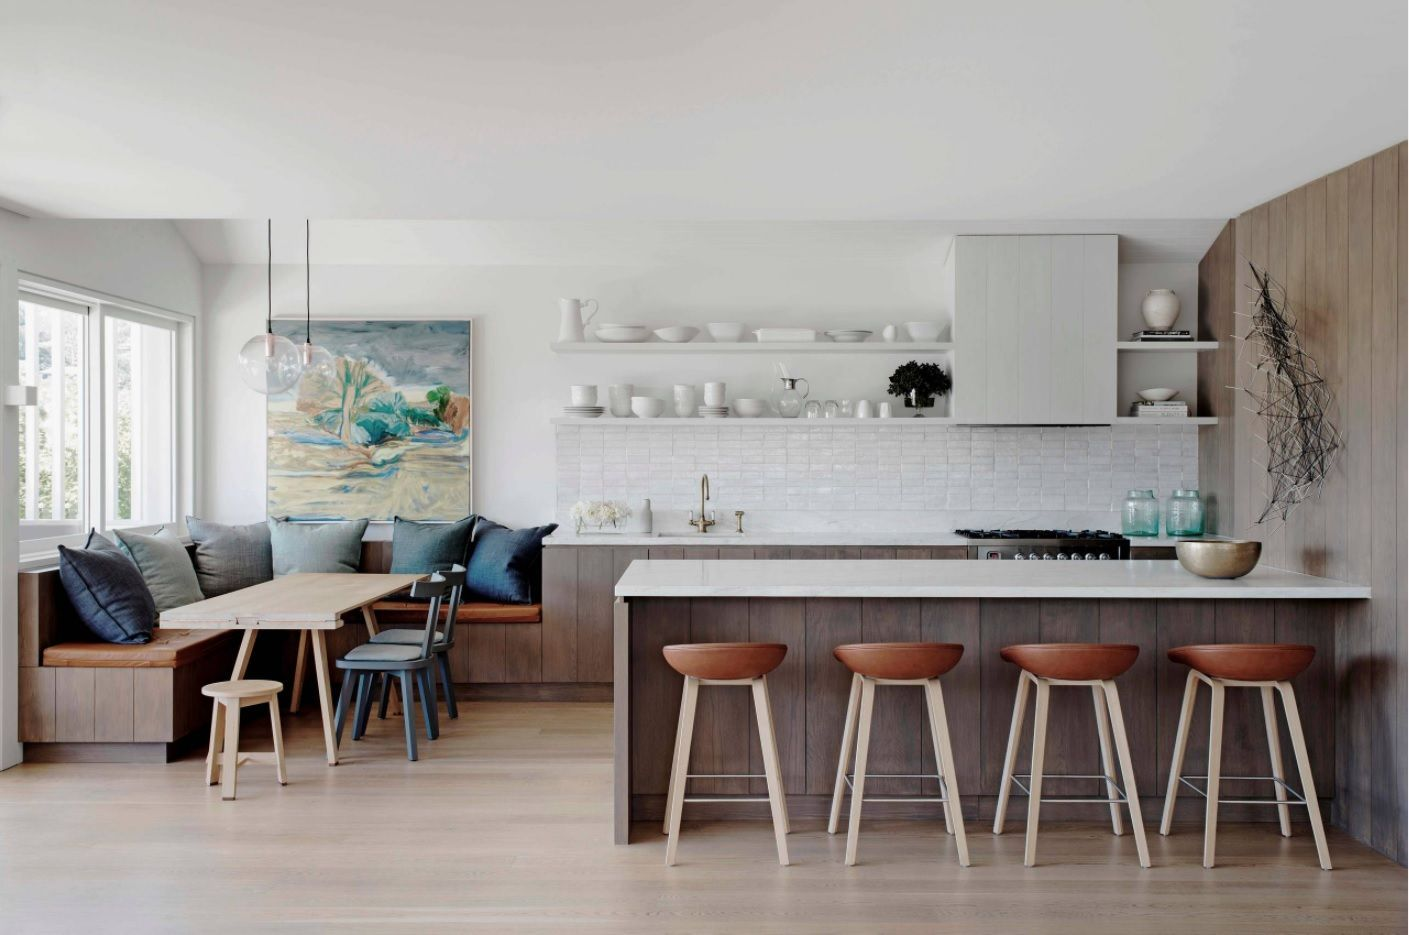 Open kitchen design in the common dining-kitchen space styled according Scandinavian style